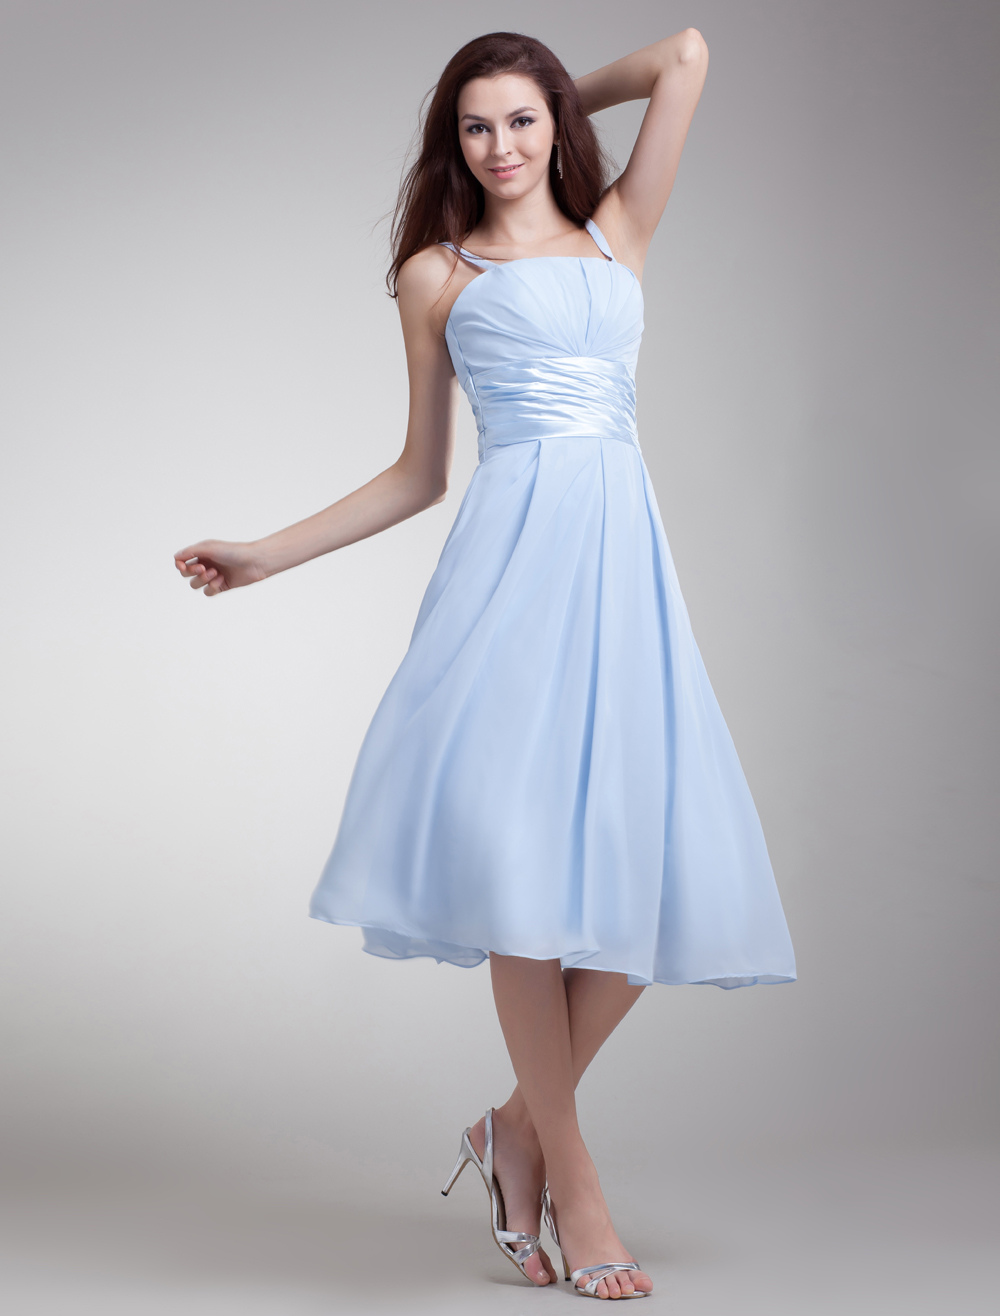 Baby Blue Bridesmaid Dress Chiffon Spaghetti Strap Ruched Waist A Line Prom Dress